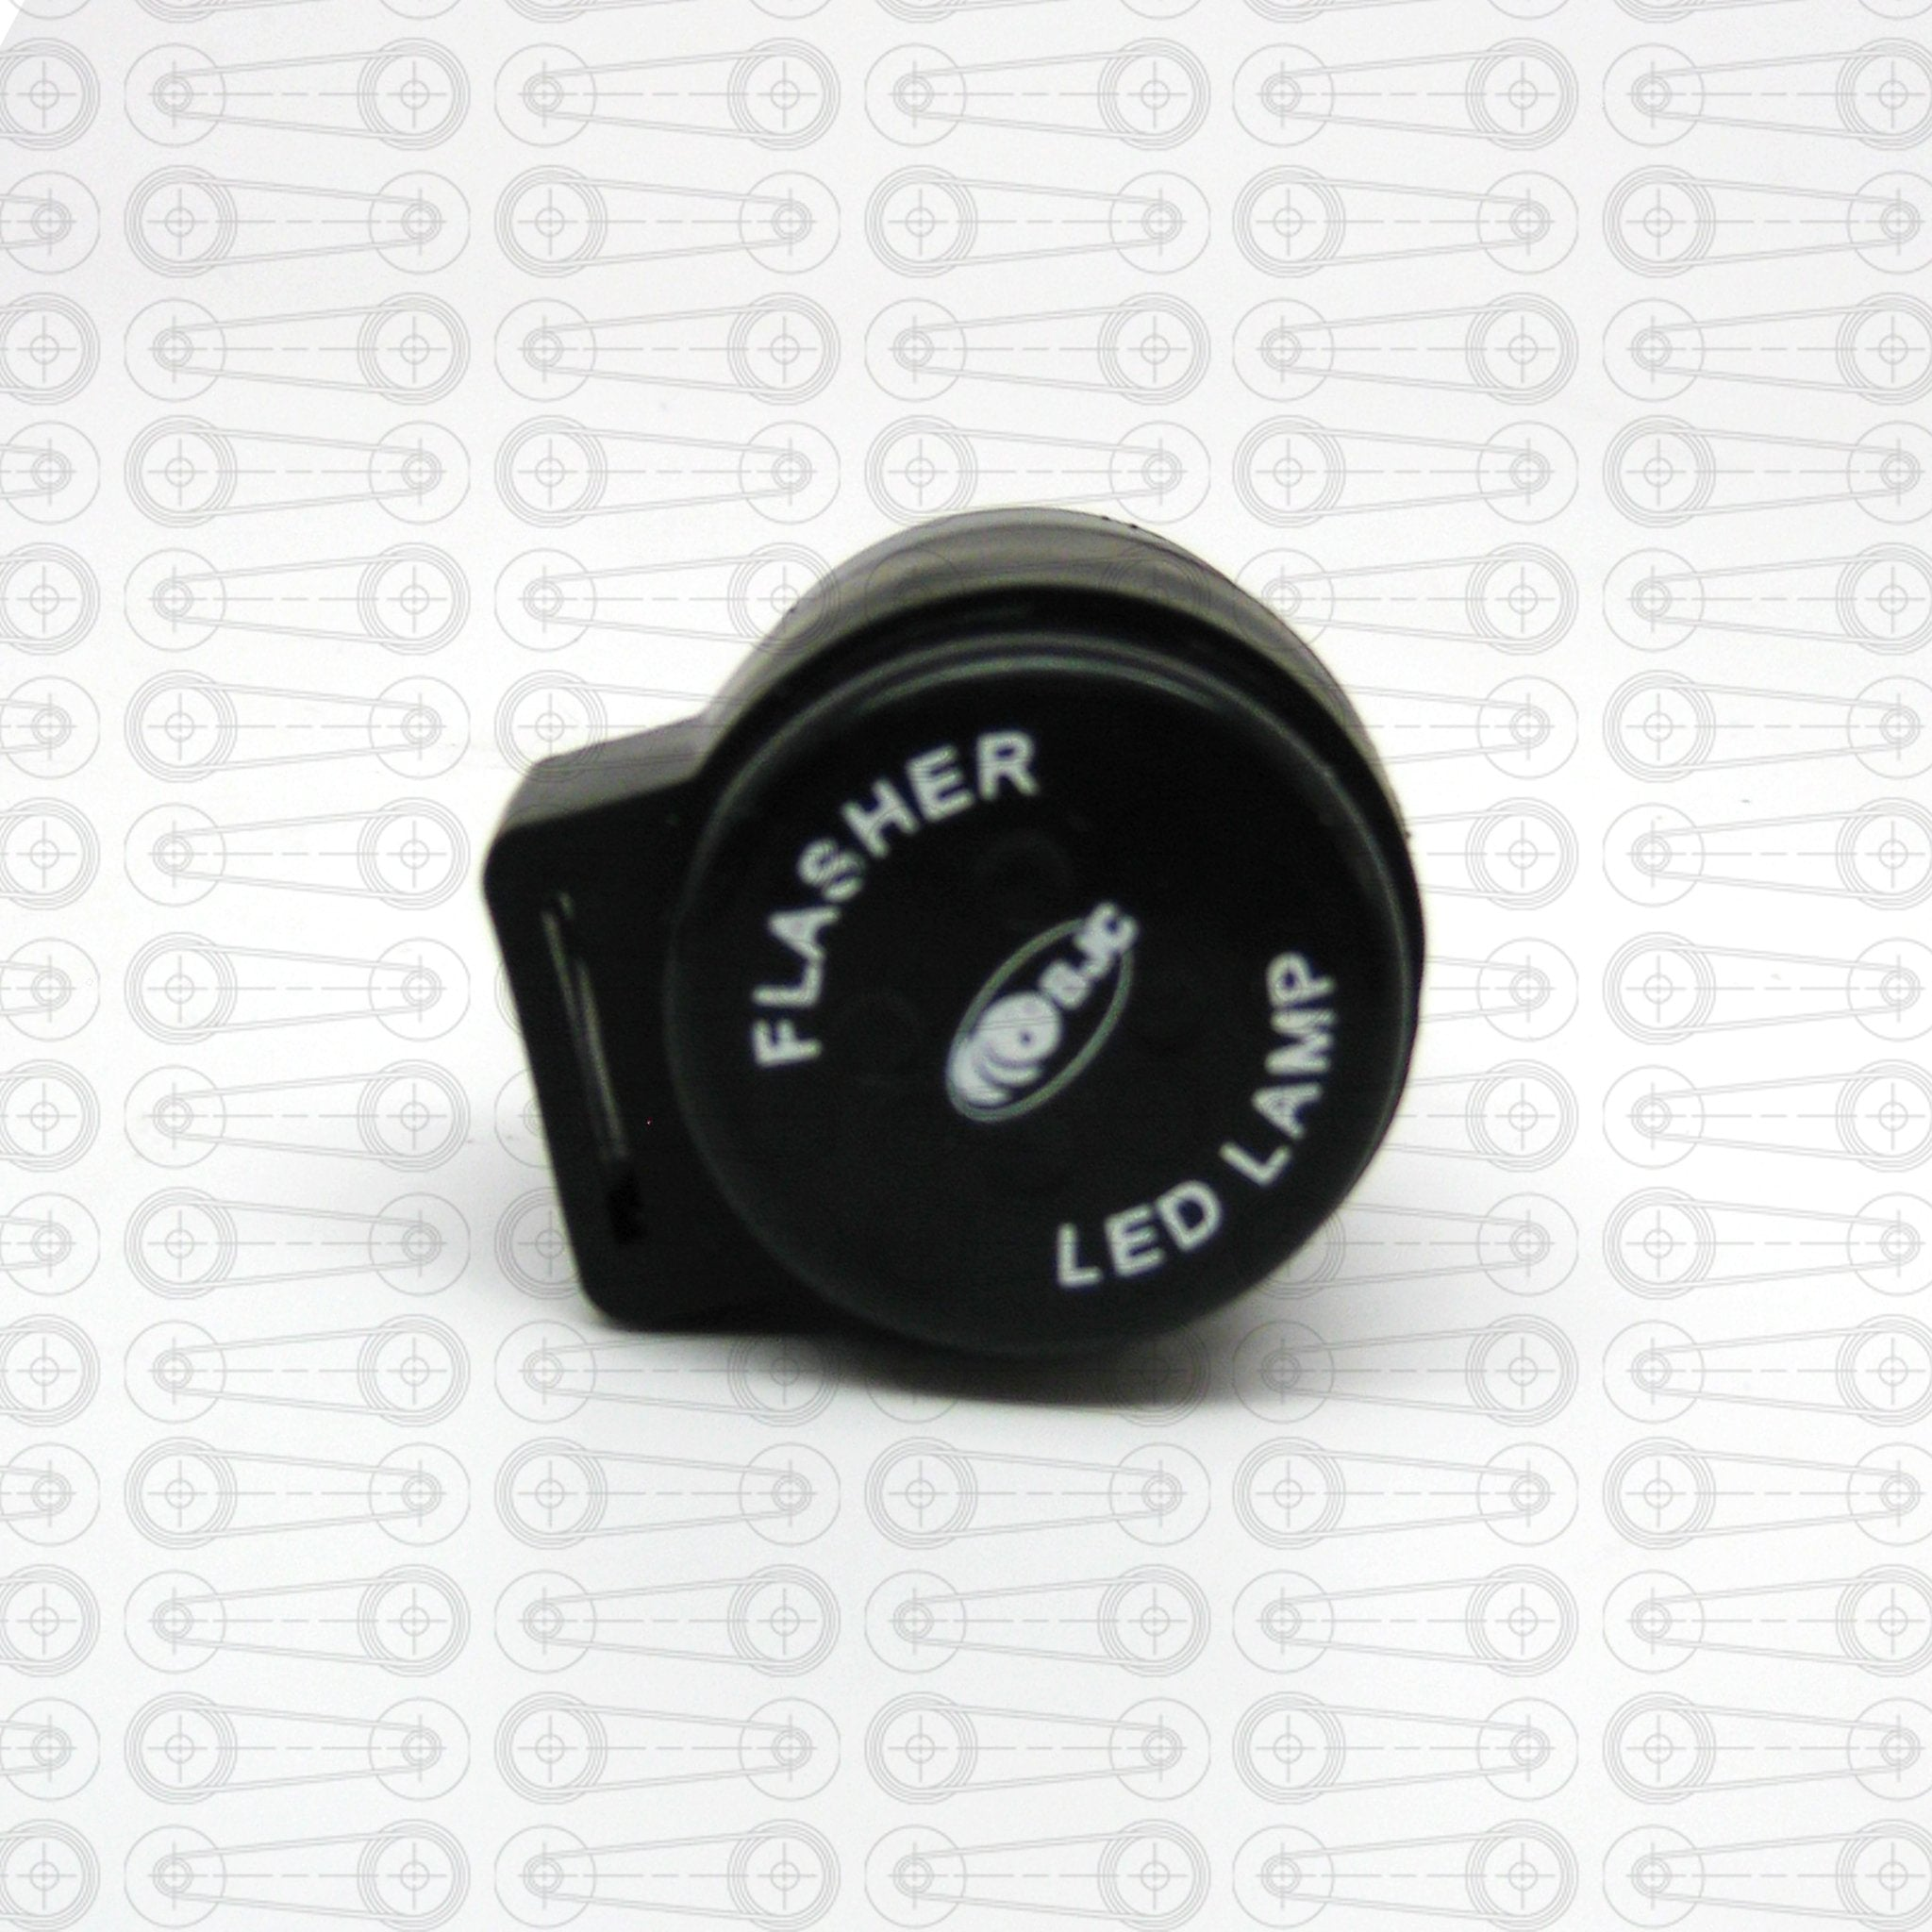 LED - RELAY FLASHER (Universal)